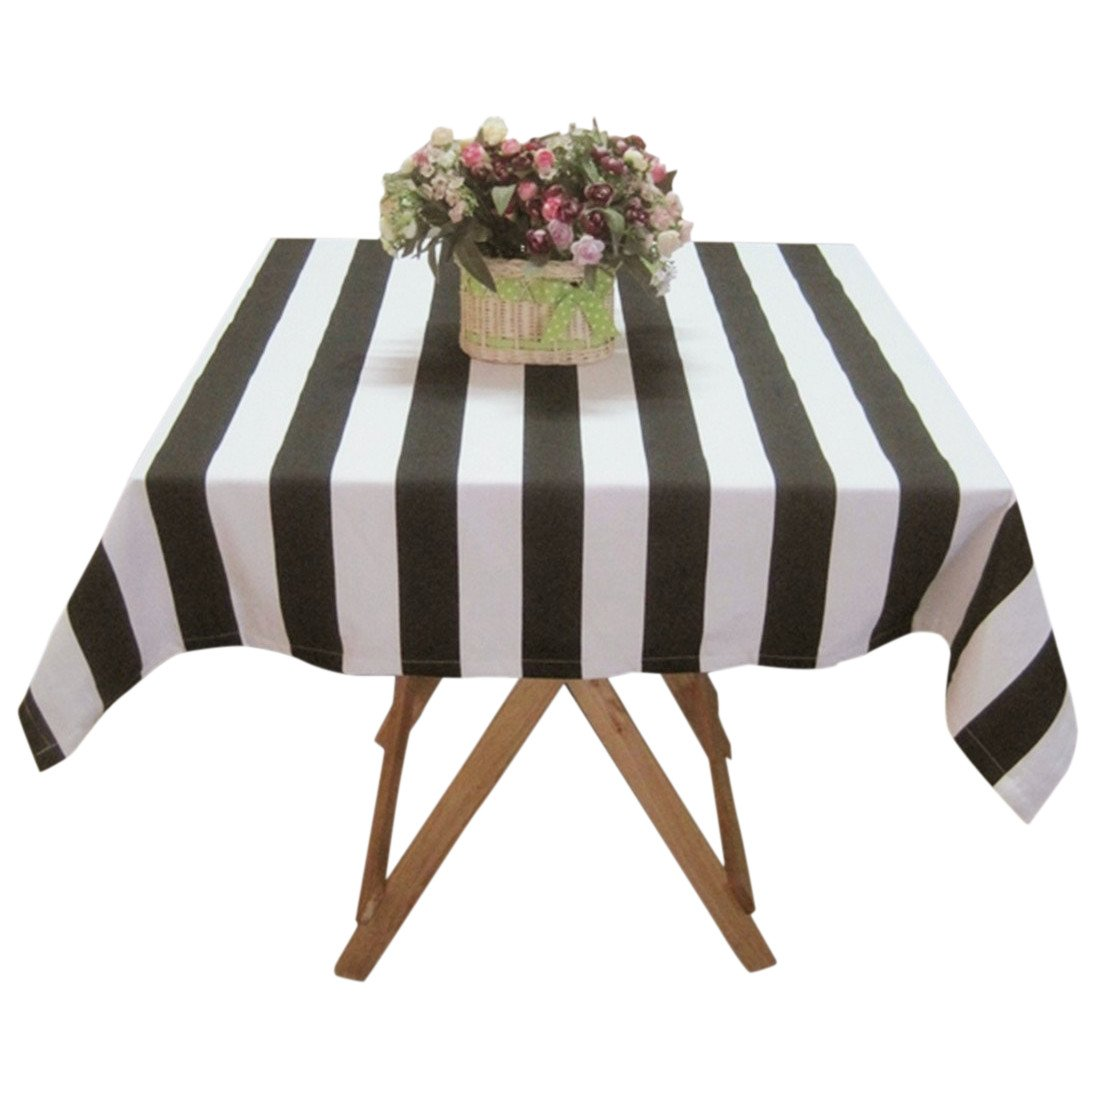 ustide black and white striped tablecloth cotton canvas small accent table cloth cover square home kitchen target decorative pillows ethan allen nightstand west elm marble top